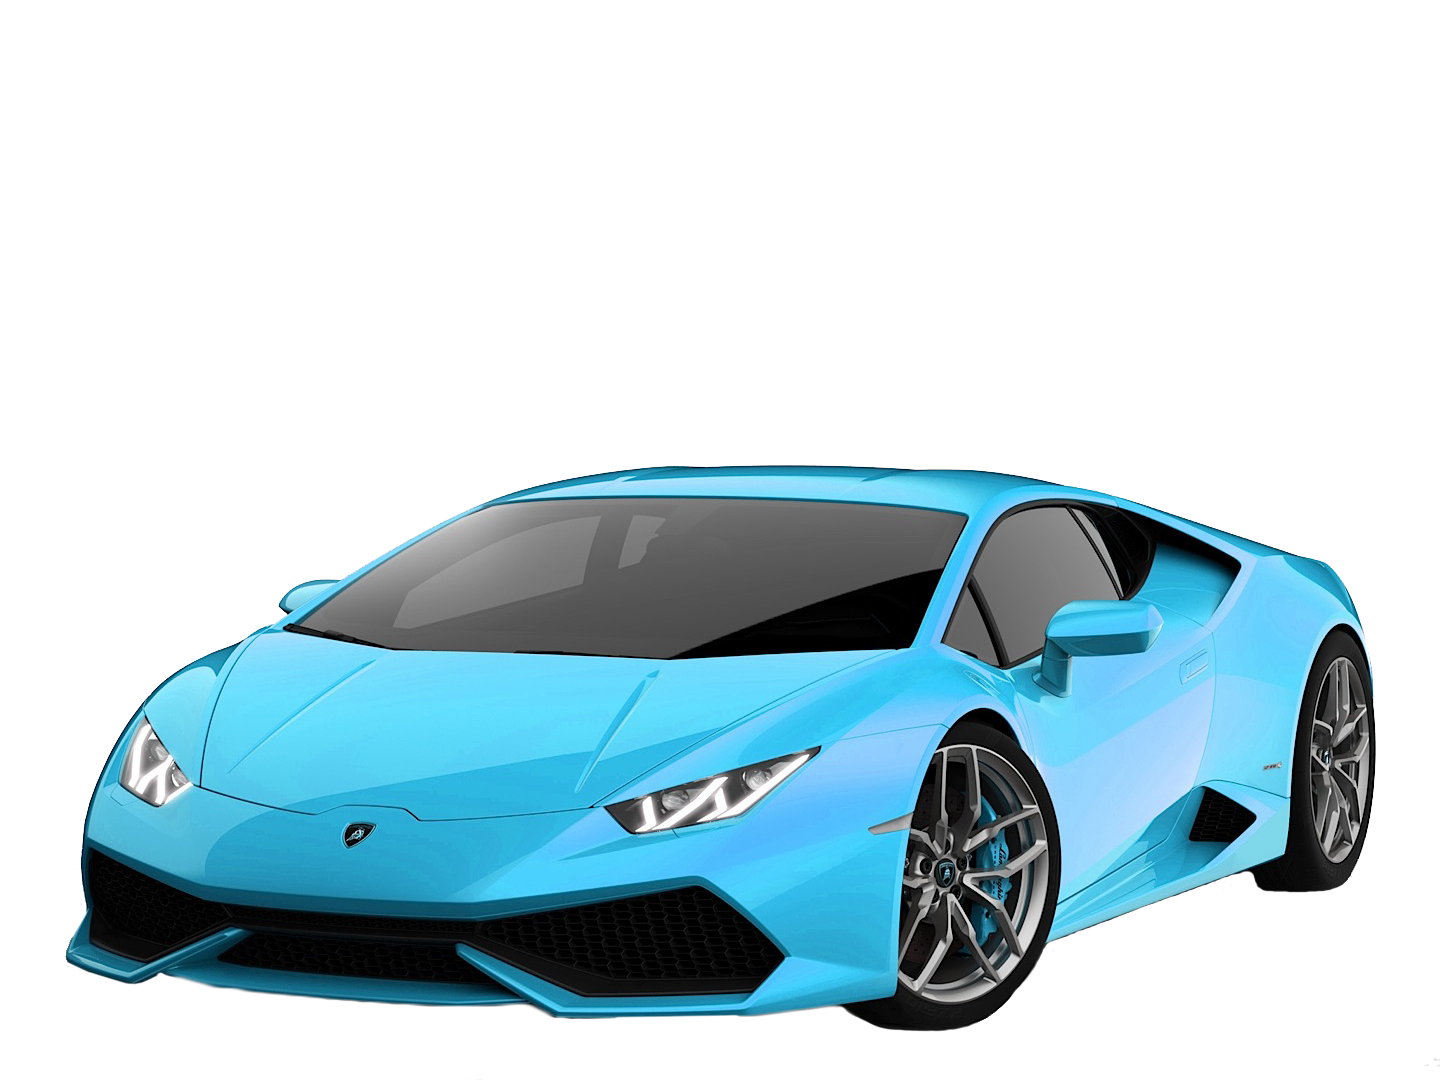 Fancy car clipart transparent. Lamborghini png images free